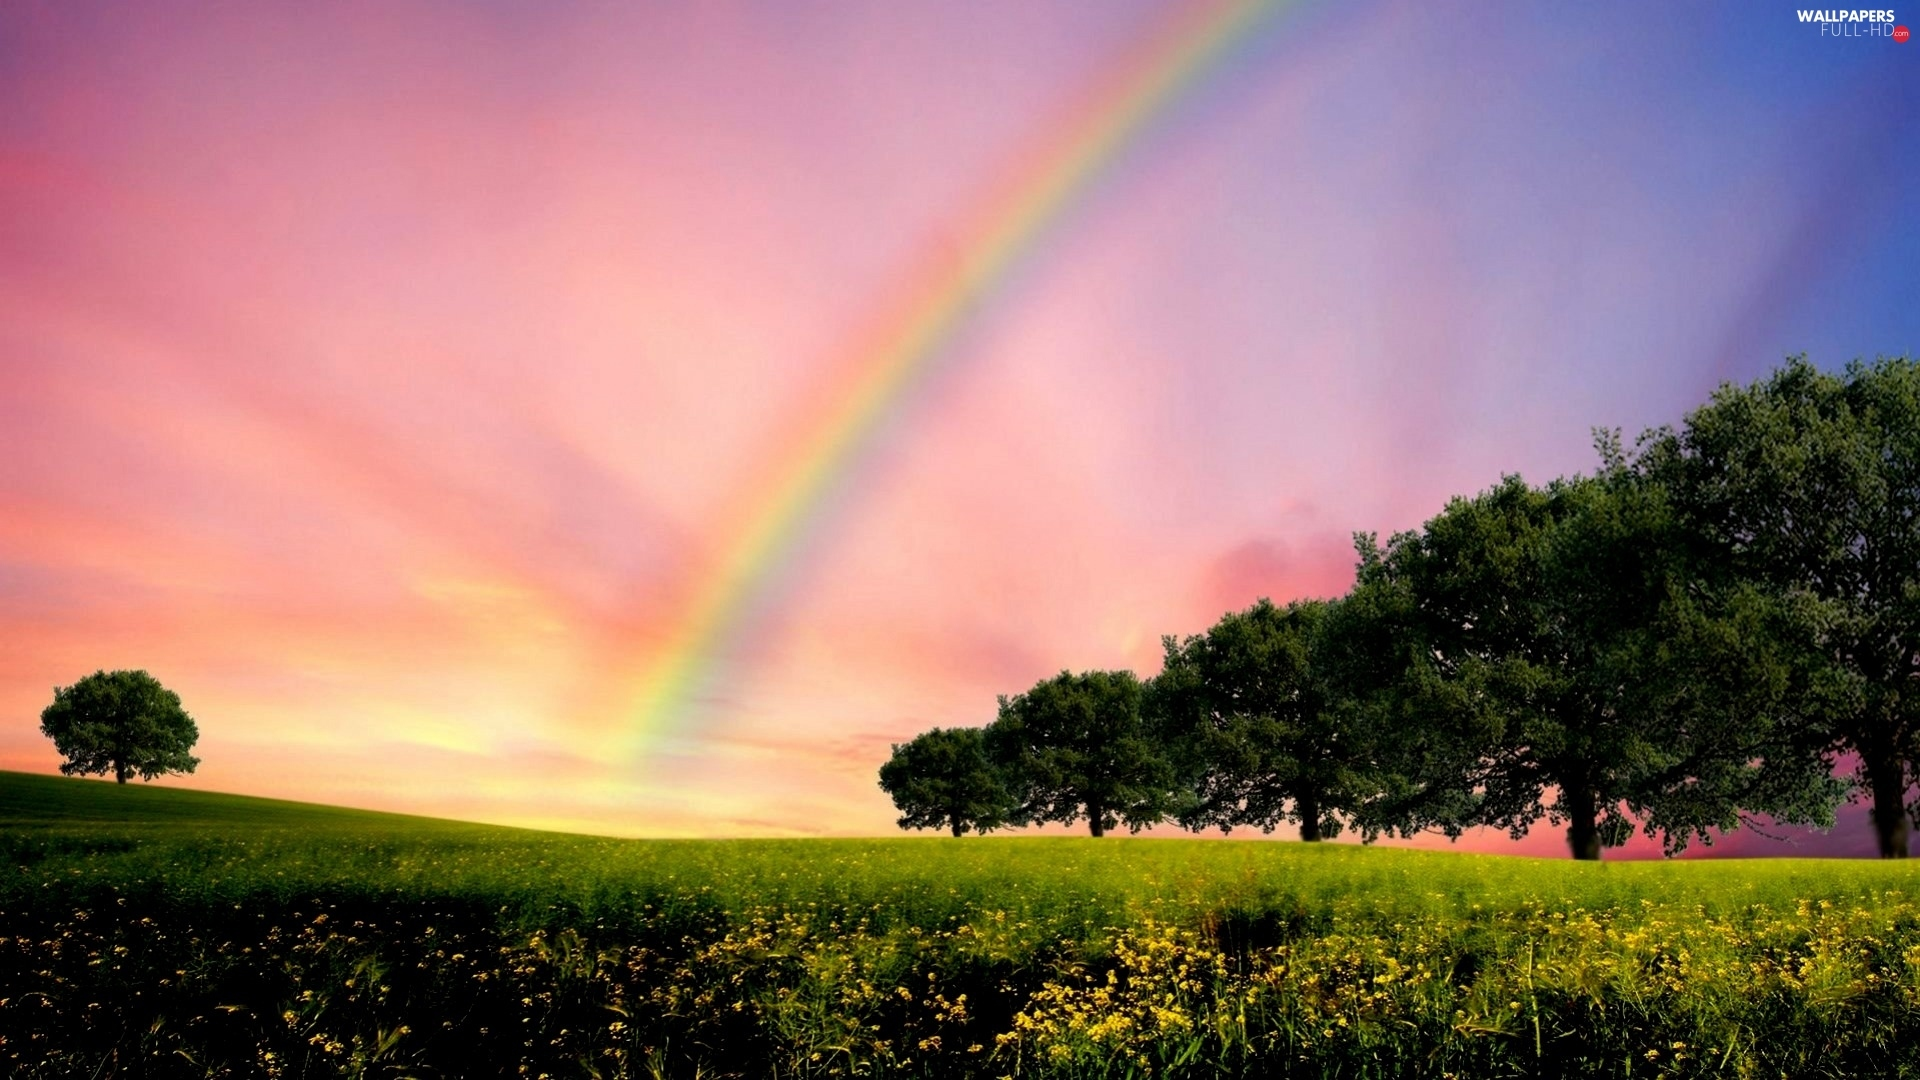 viewes, trees, Meadow, Great Rainbows